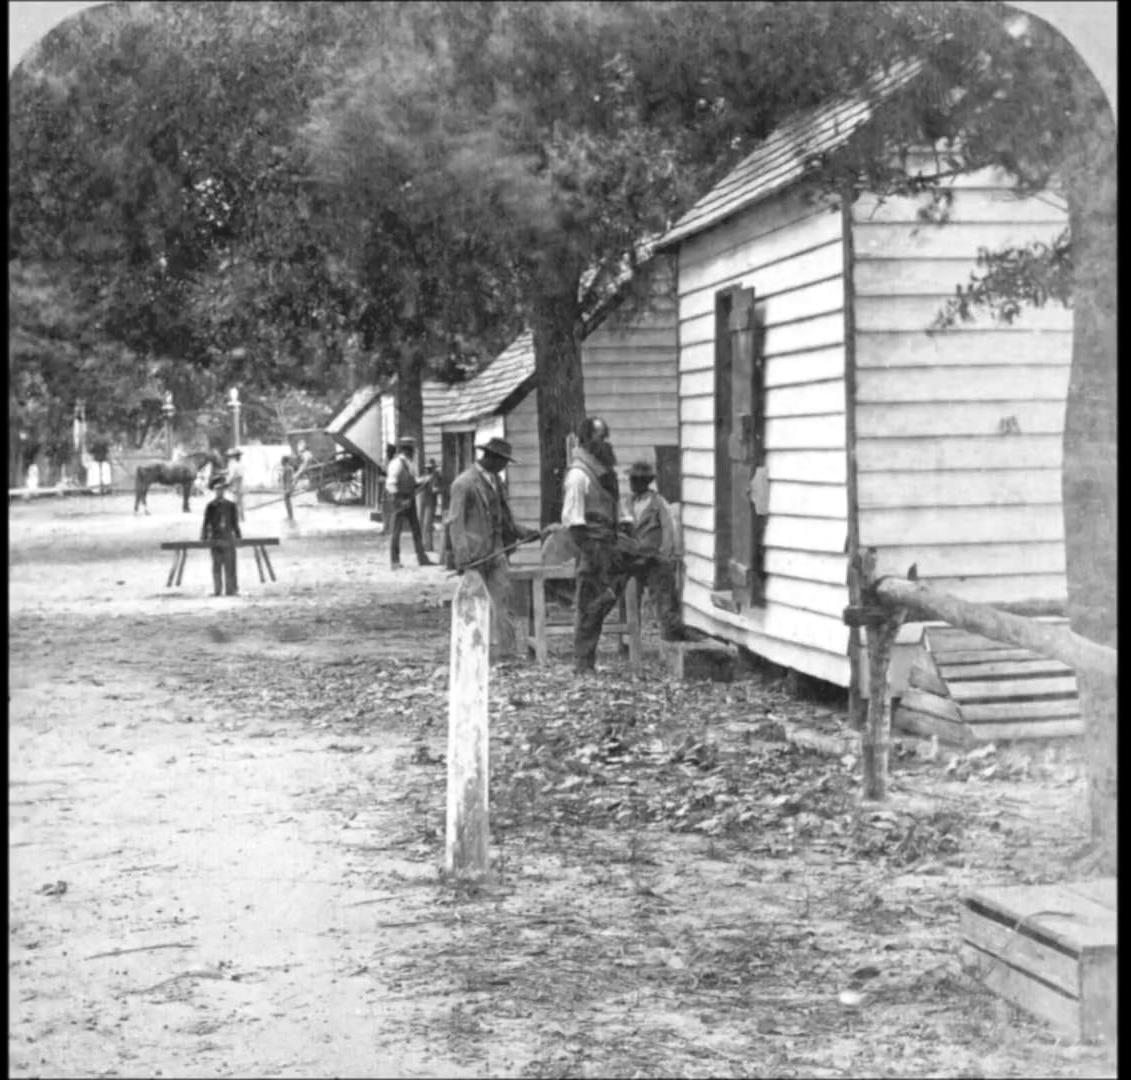 Rare Photos of Slaves in South Carolina From the 1850s1860s_04